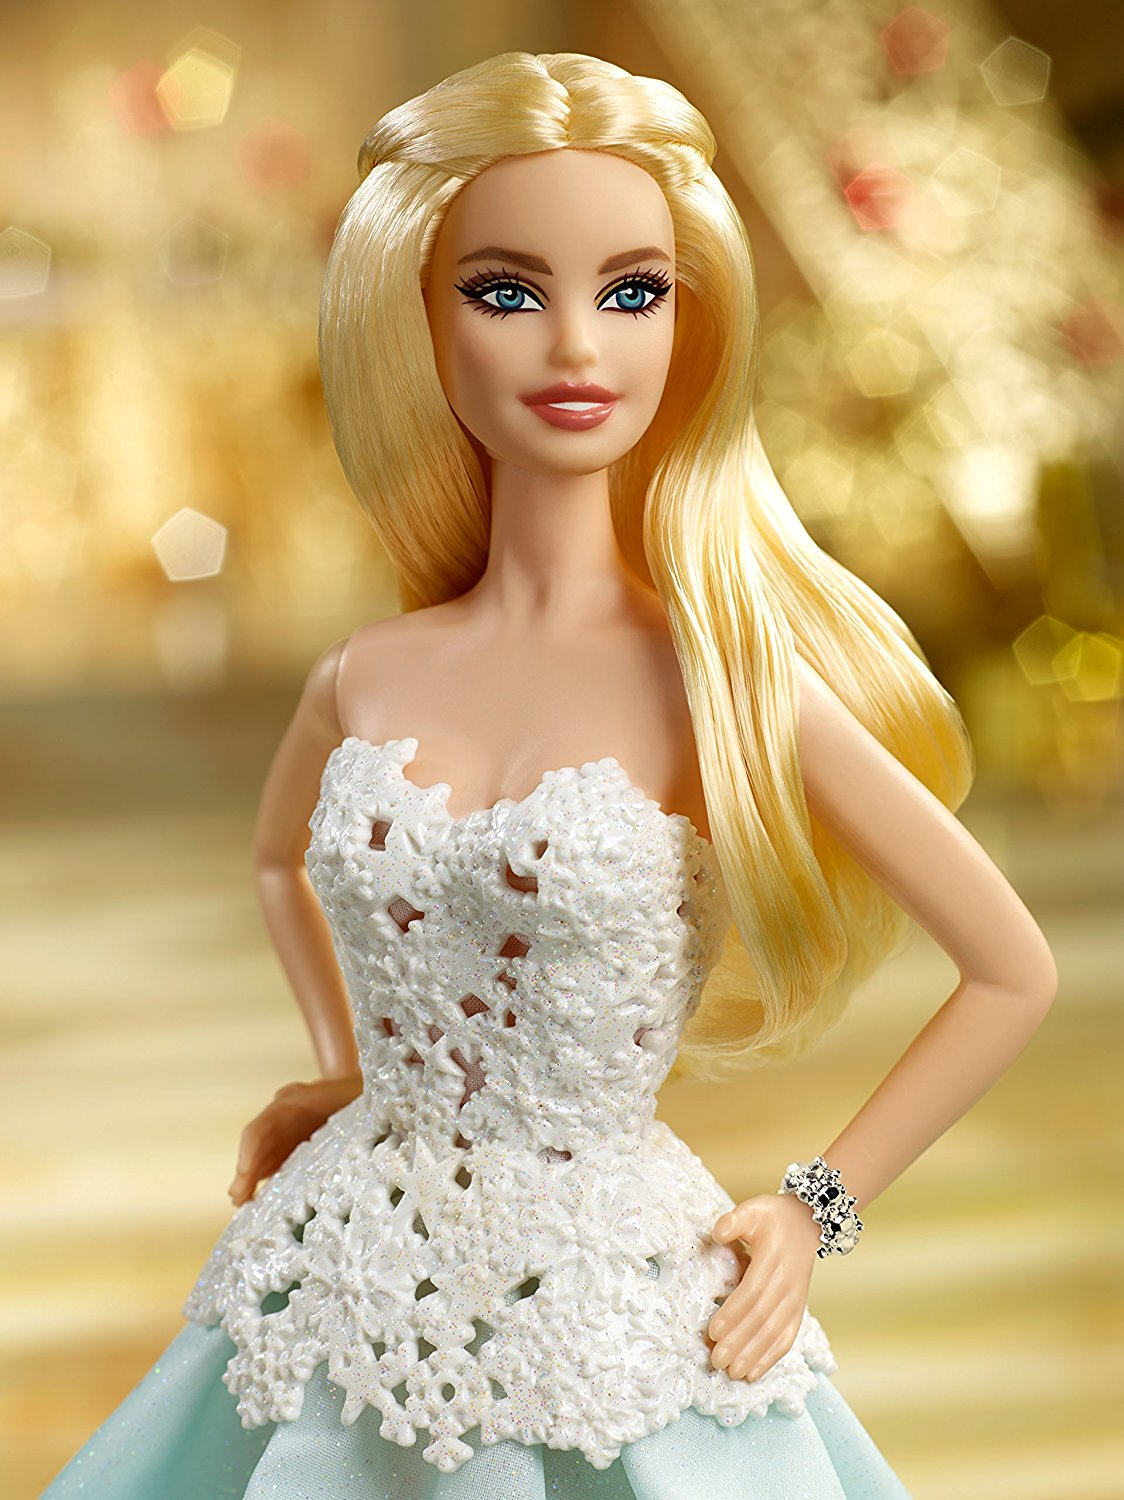 the price of becoming a barbie doll 'everybody's gonna pay a price': who dreamed of her becoming a human doll as a 'human ken doll' and he dreamed of turning her into a curvy barbie doll.